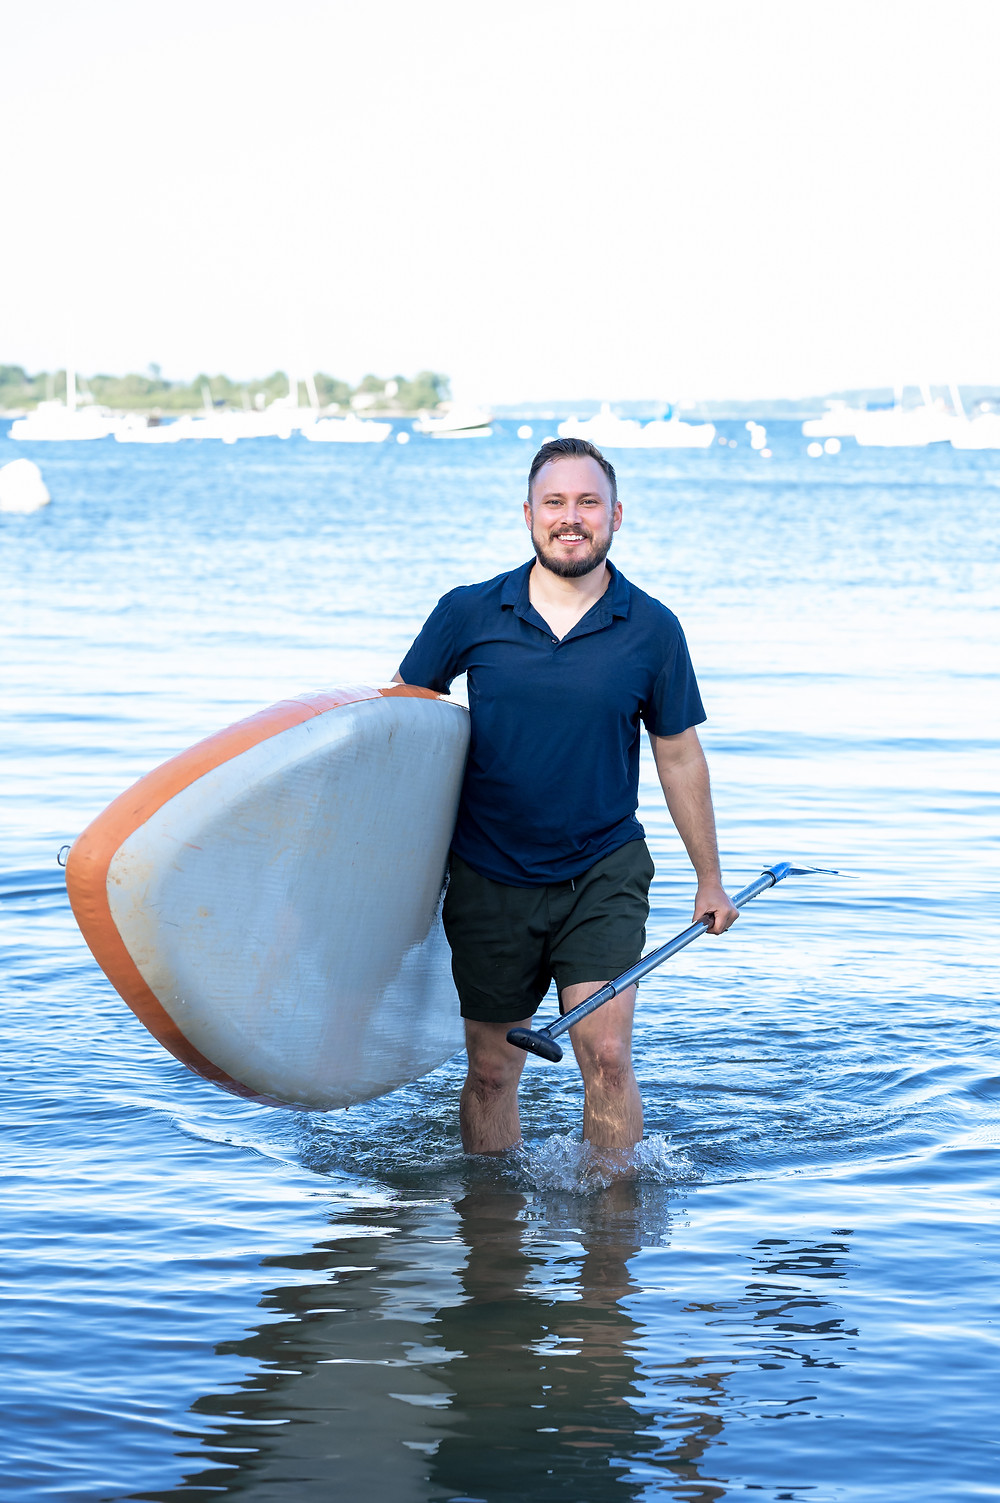 guy with paddle board smiling